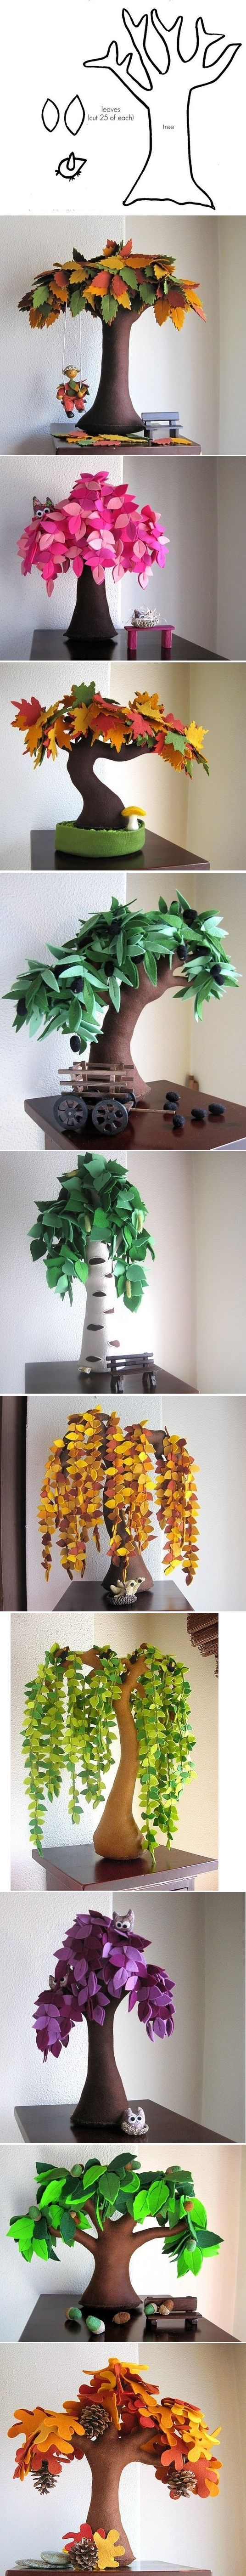 try to make a felt tree